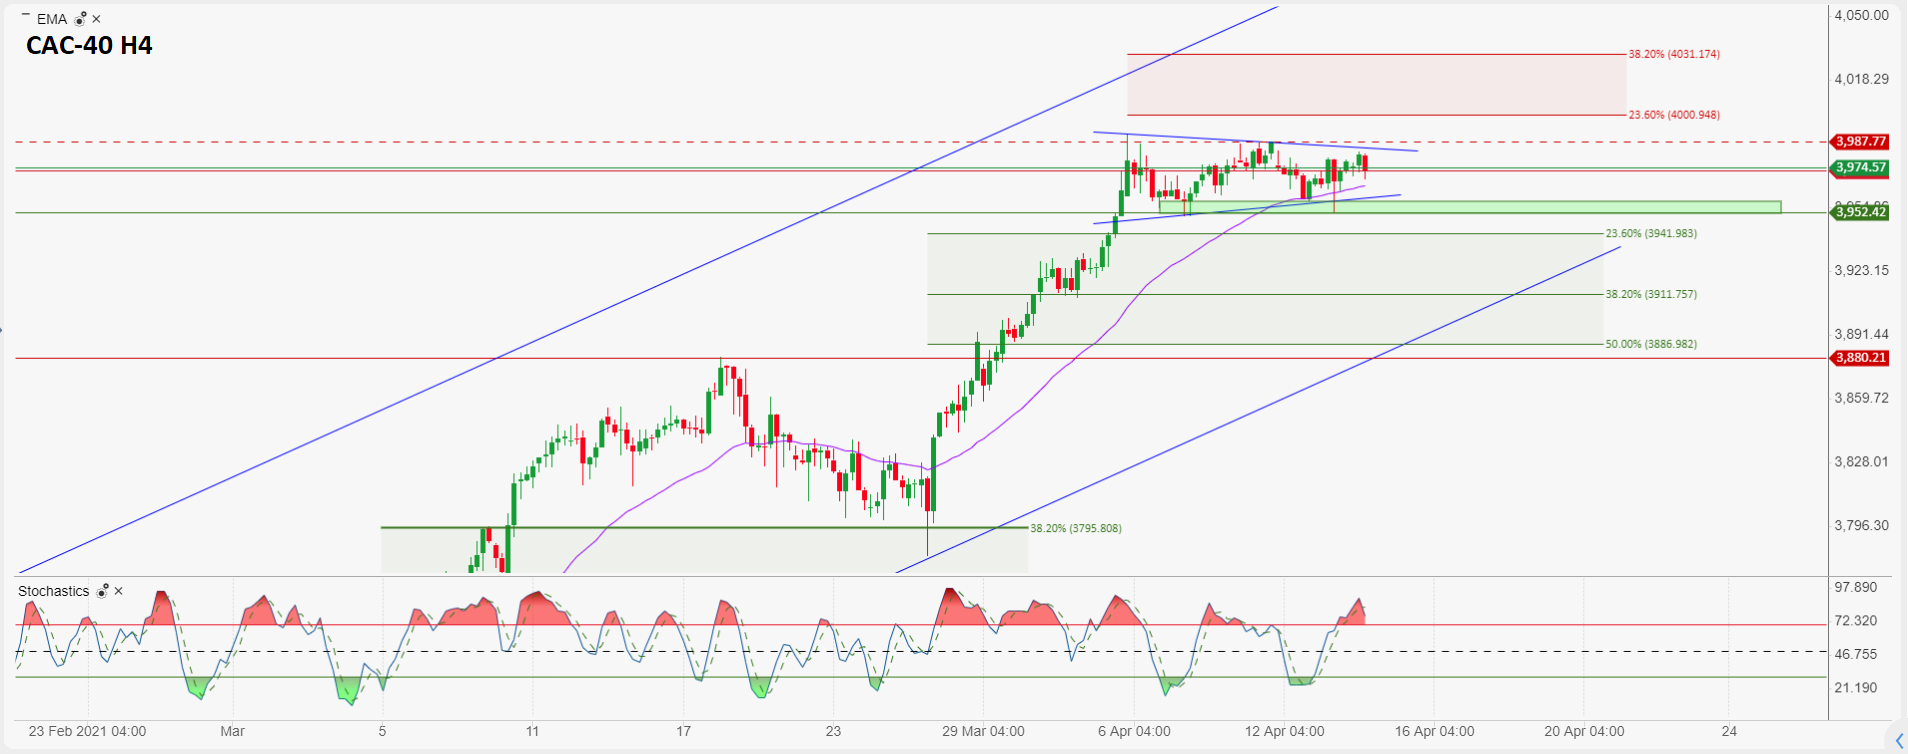 Daily market commentary: The dollar is showing weakness during early Wednesday trading